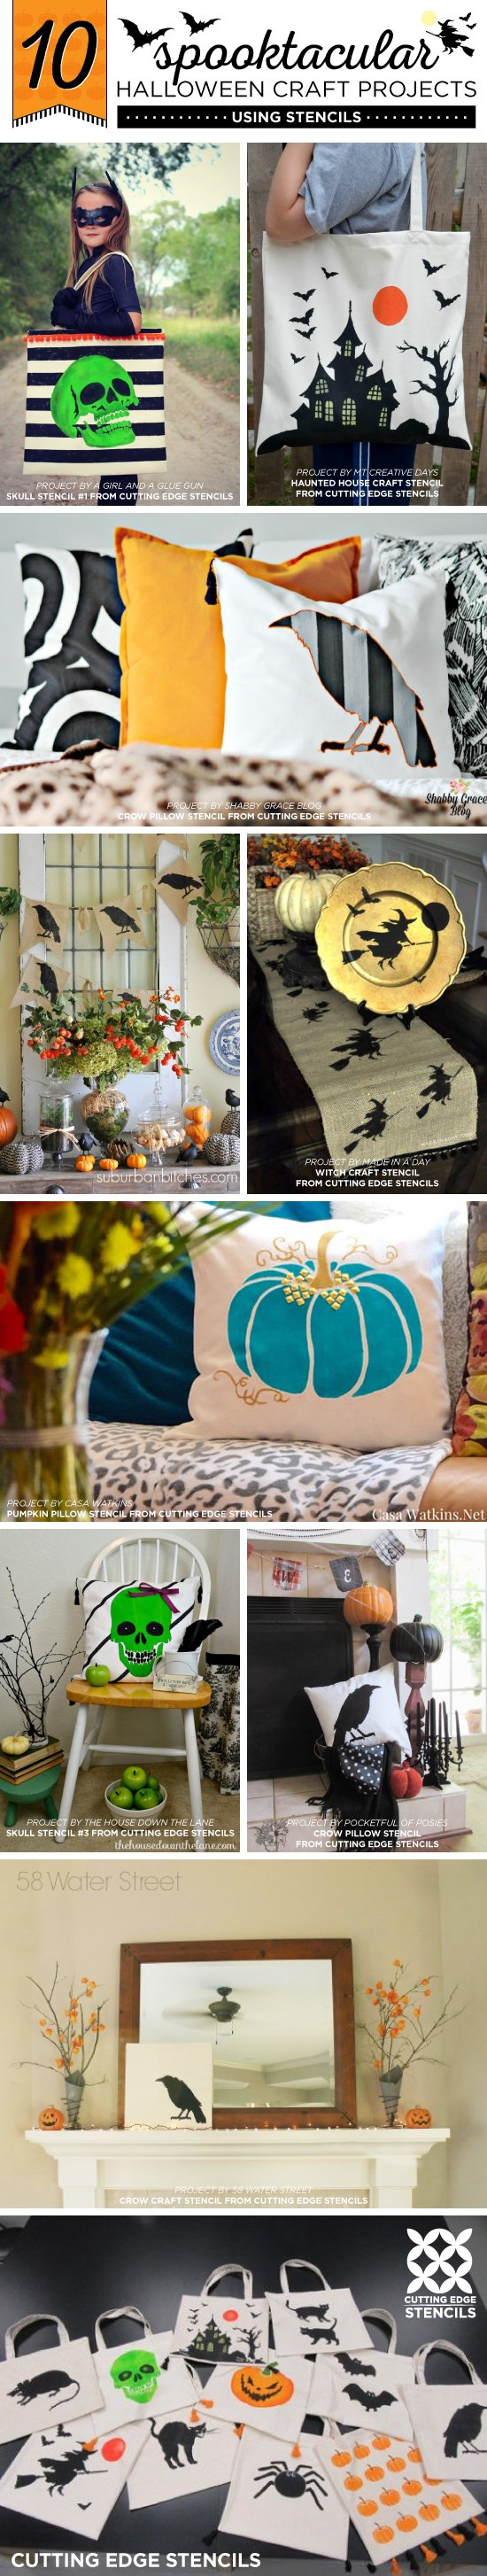 Cutting Edge Stencils shares easy and fun DIY Halloween craft projects using stencil patterns. http://www.cuttingedgestencils.com/halloween-stencils-pumpkin-stencil-stenciled-tote.html